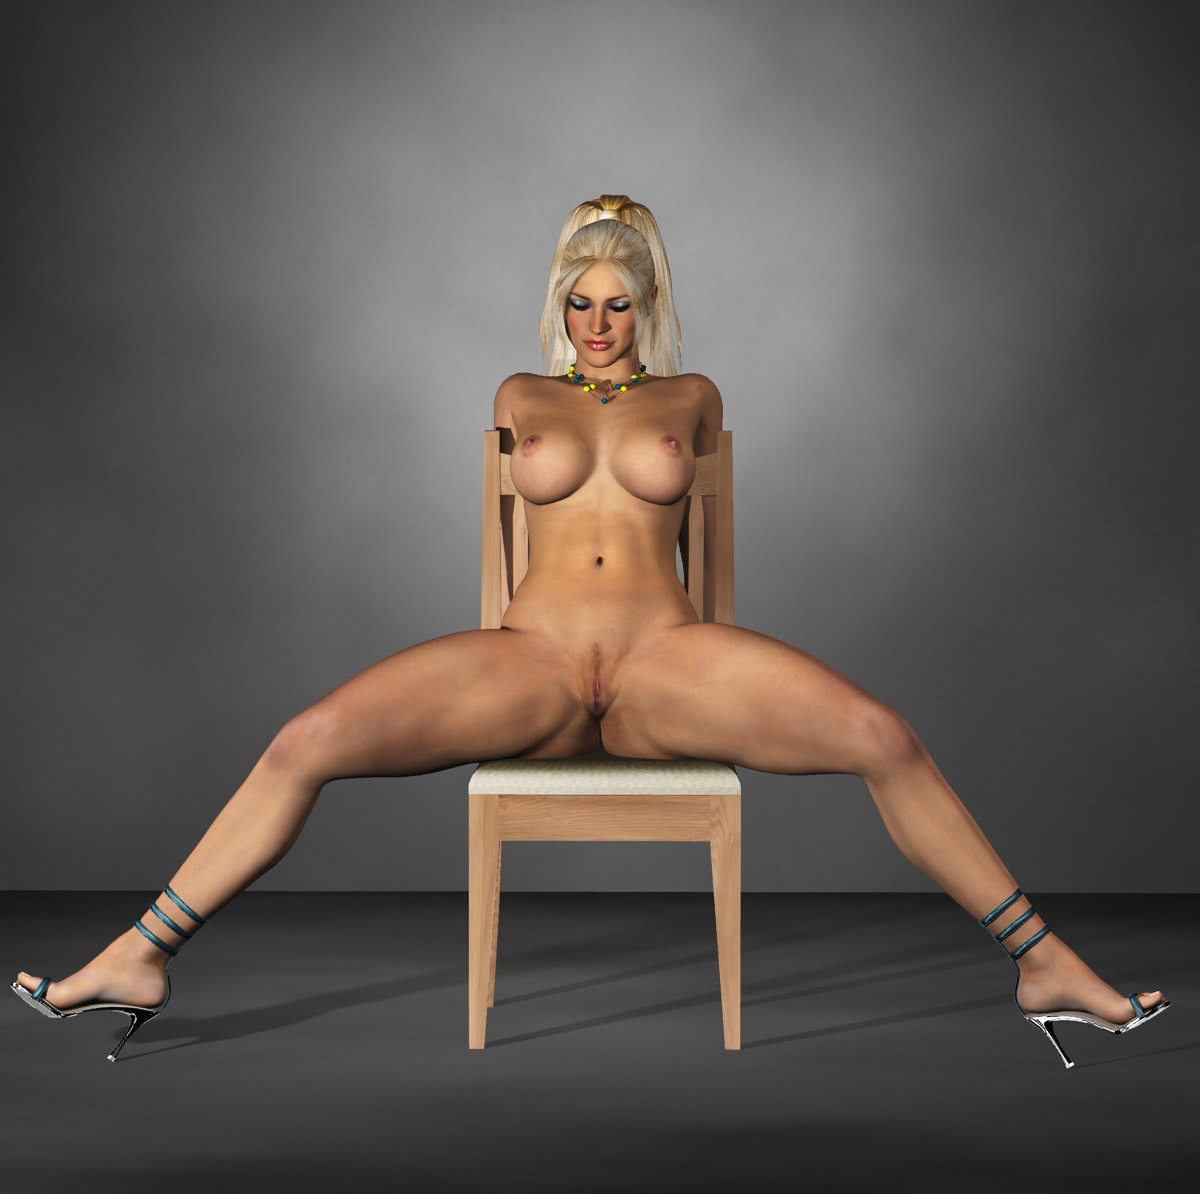 Succubusporn pics naked photo